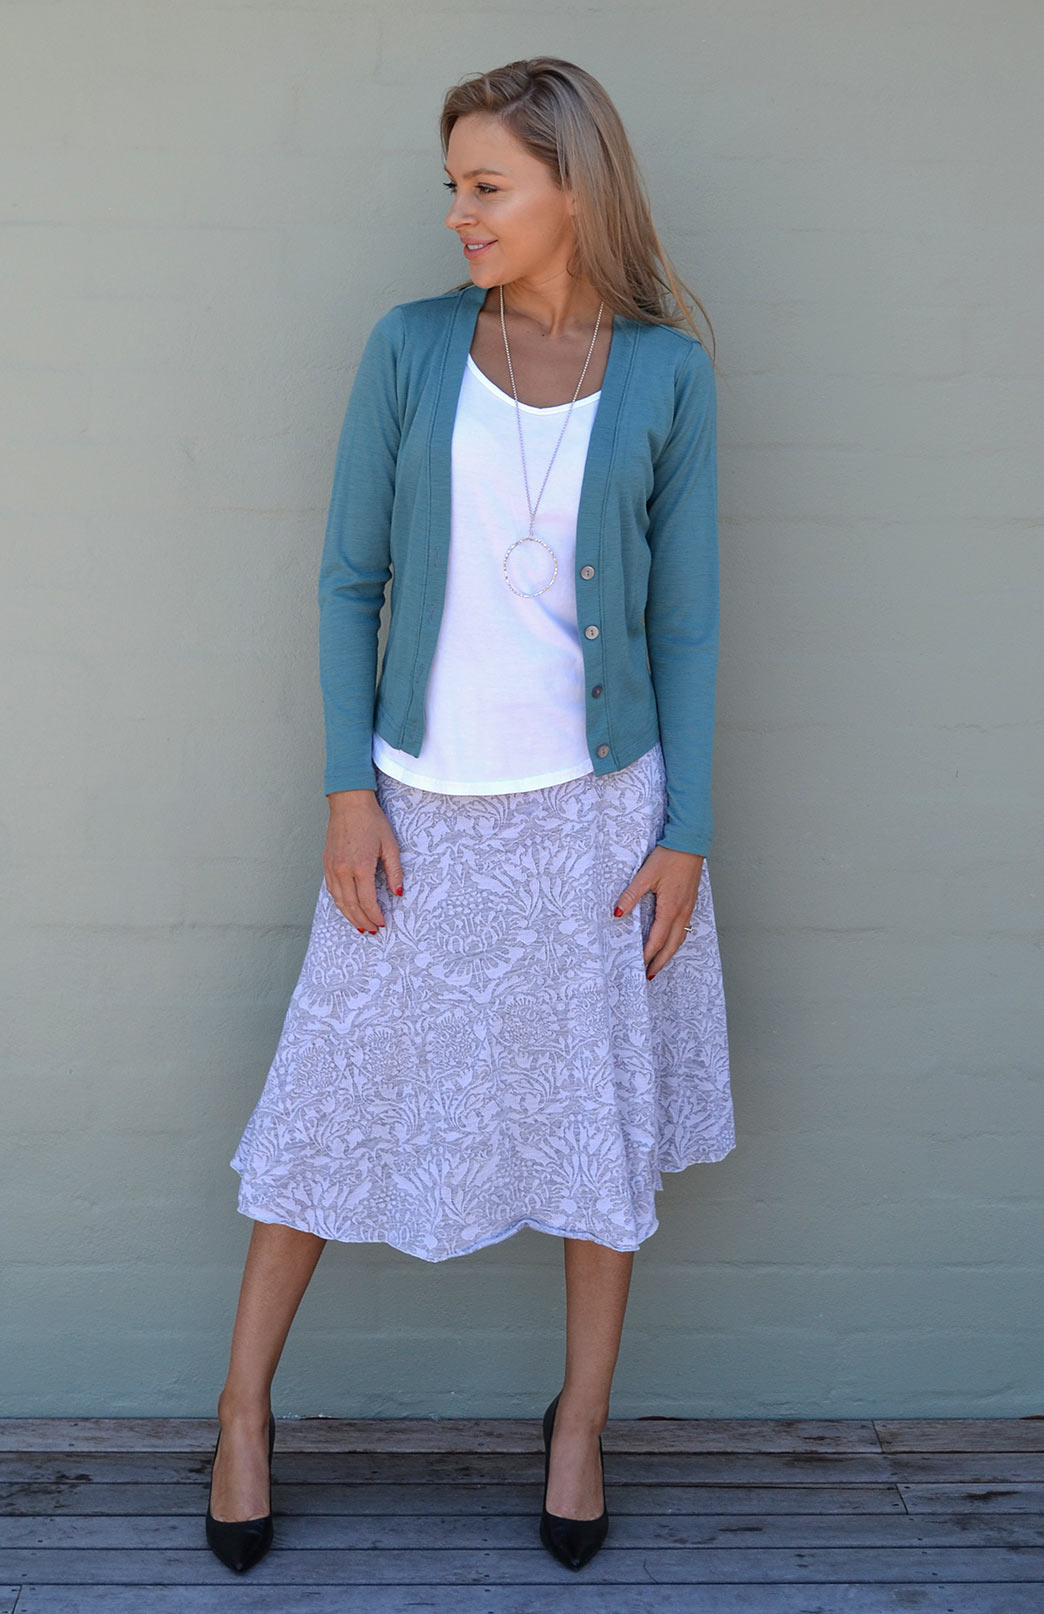 Twirl Skirt in Soft Grey and White Floral